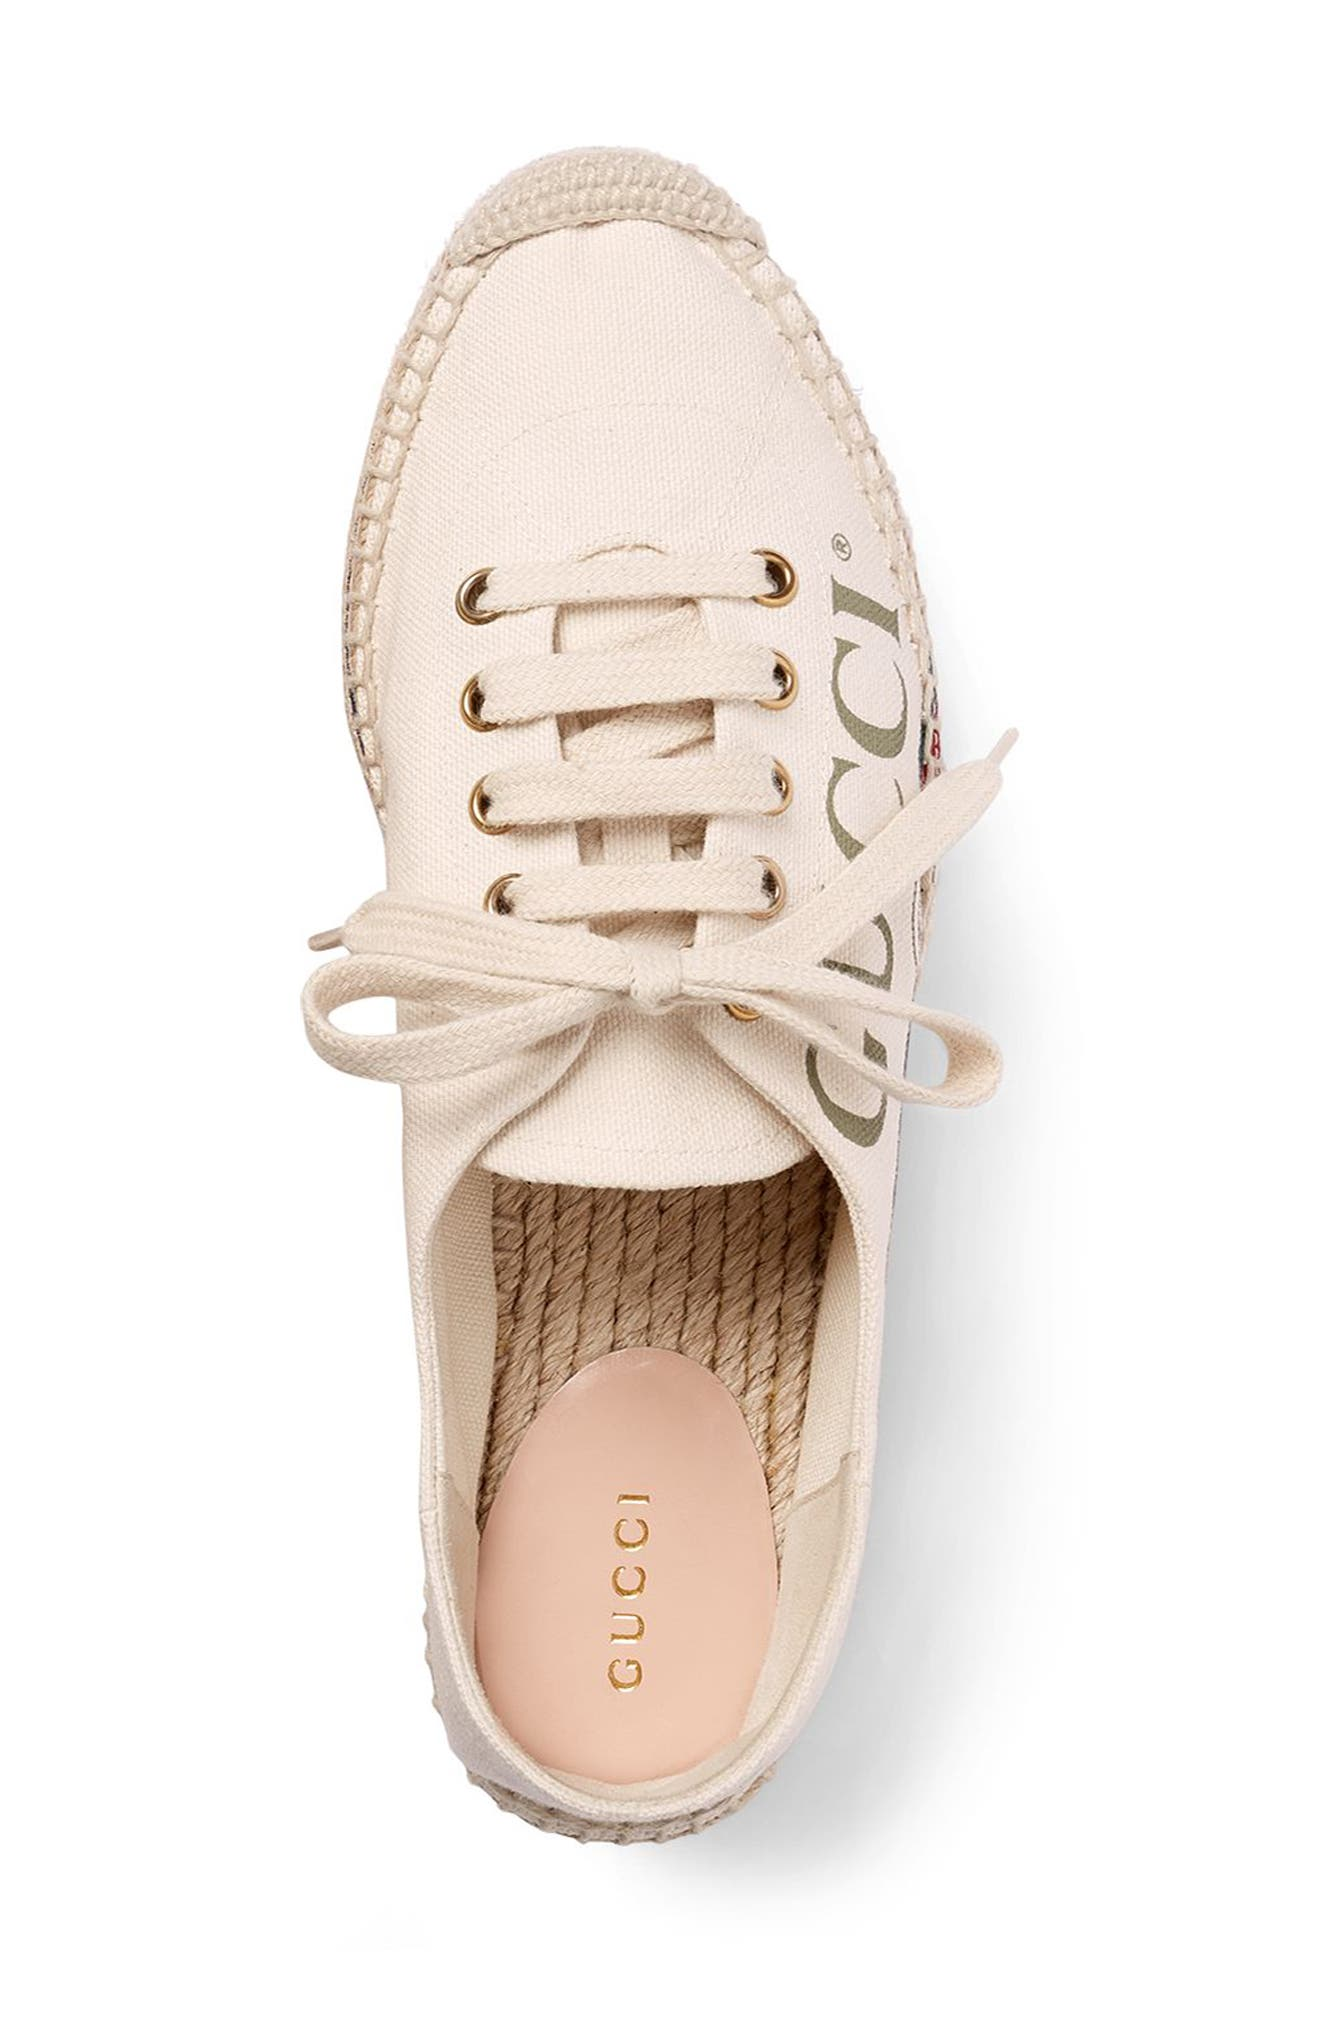 GUCCI, Convertible Logo Espadrille, Alternate thumbnail 3, color, IVORY